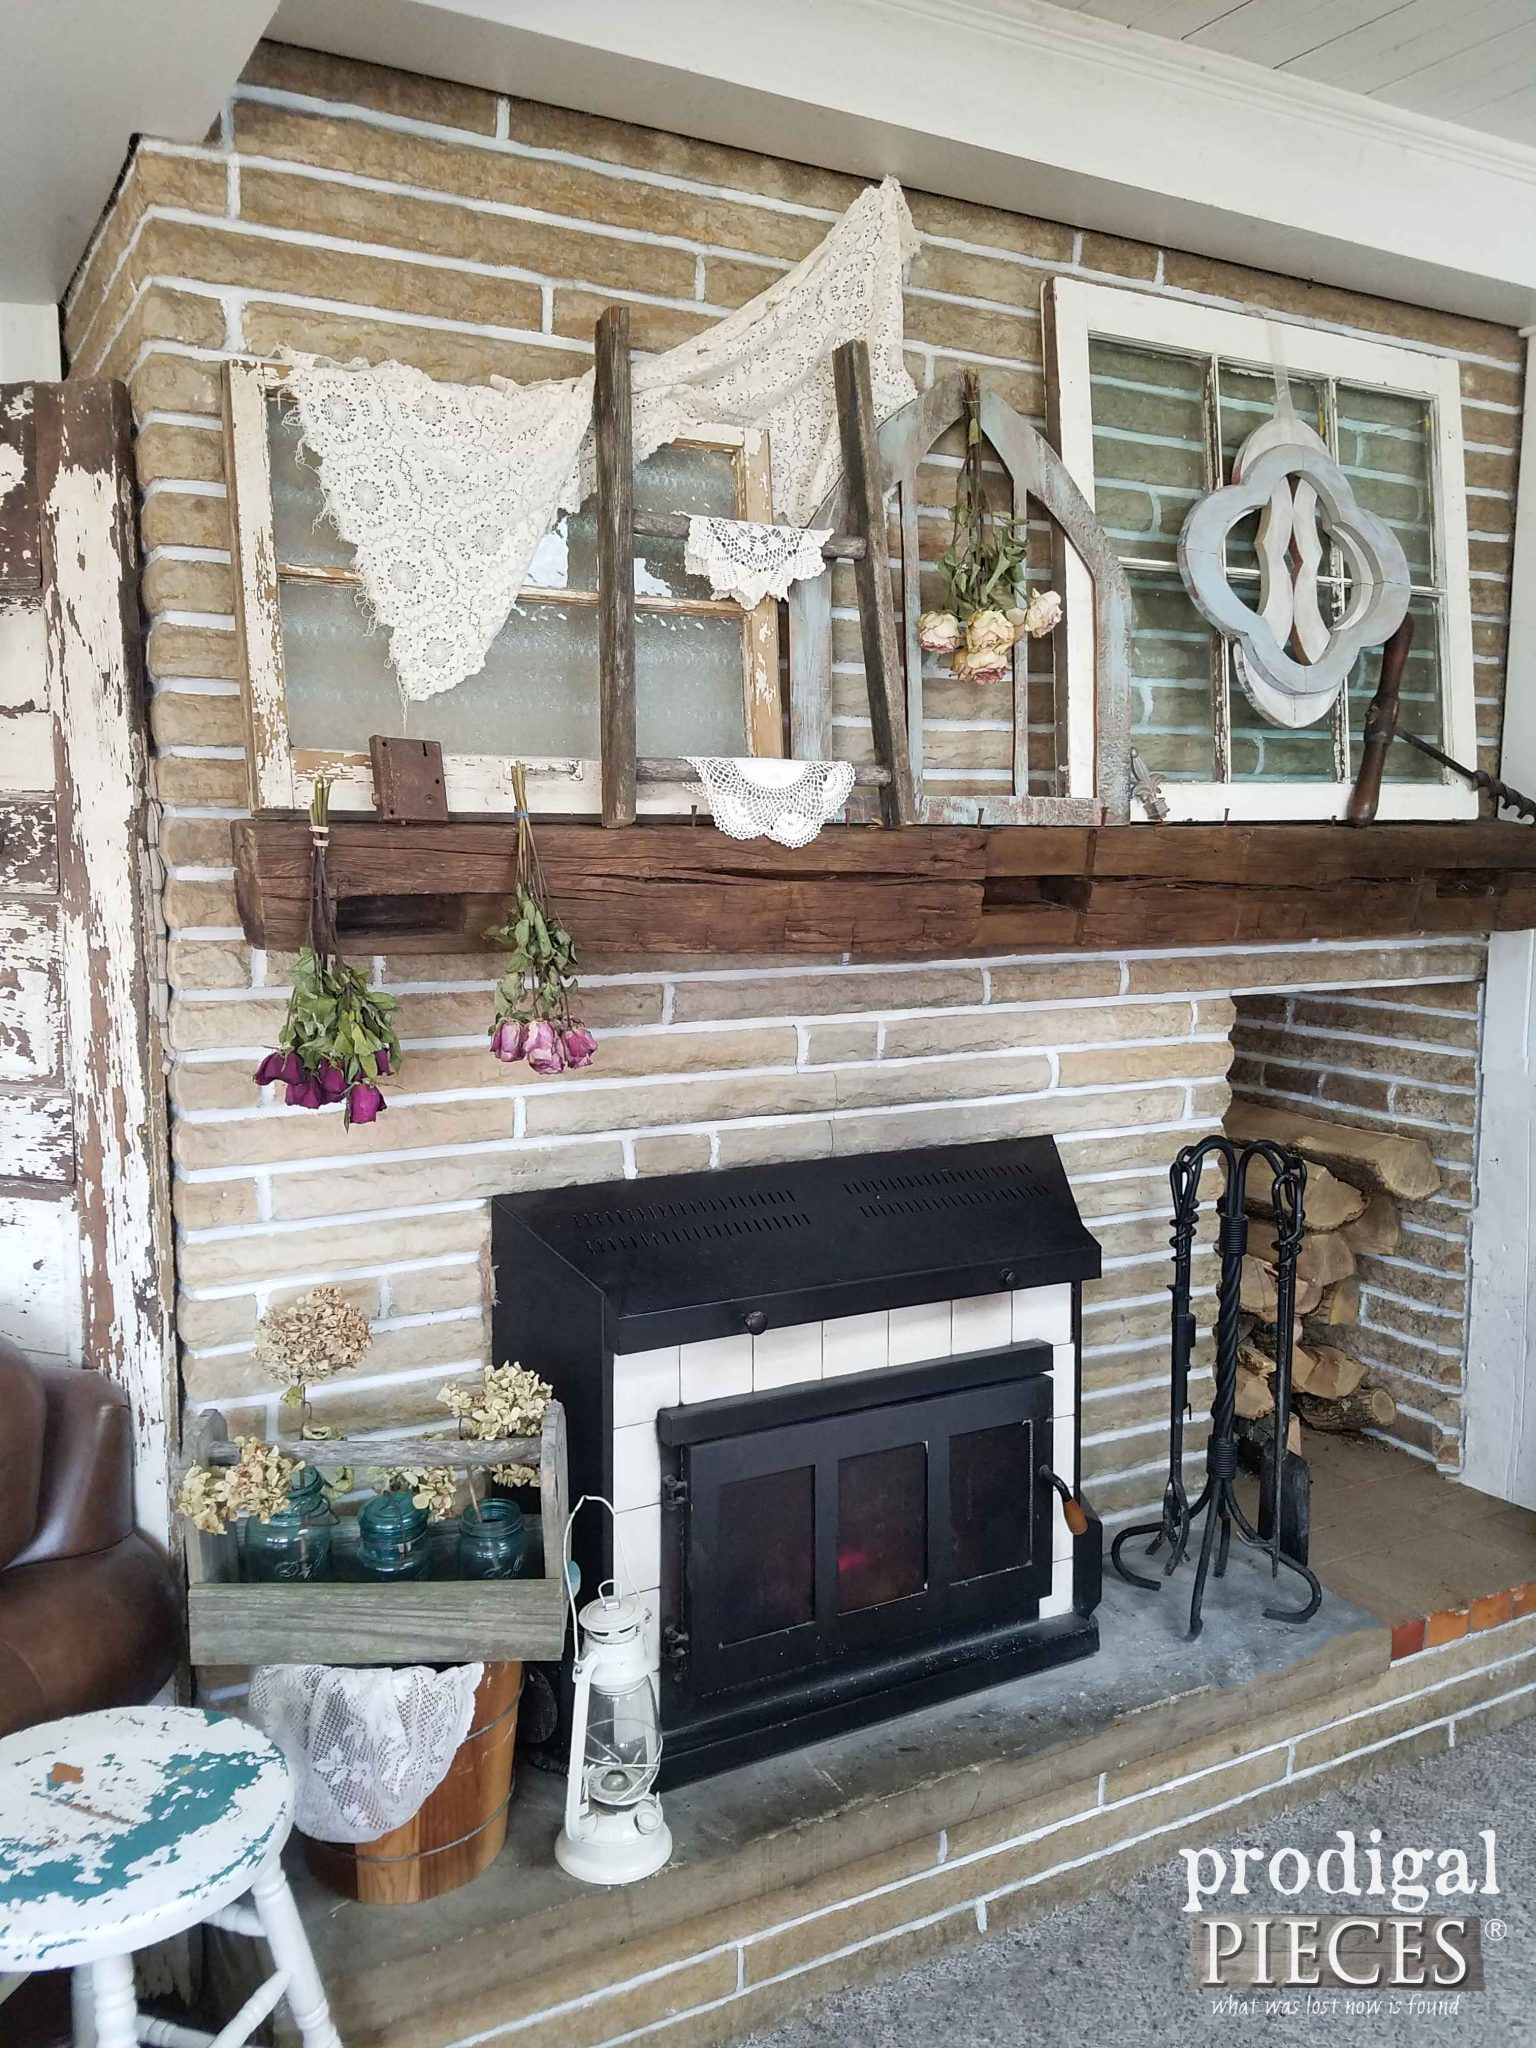 Farmhouse Fireplace with Salvaged Style Decor | Prodigal Pieces | prodigalpieces.com